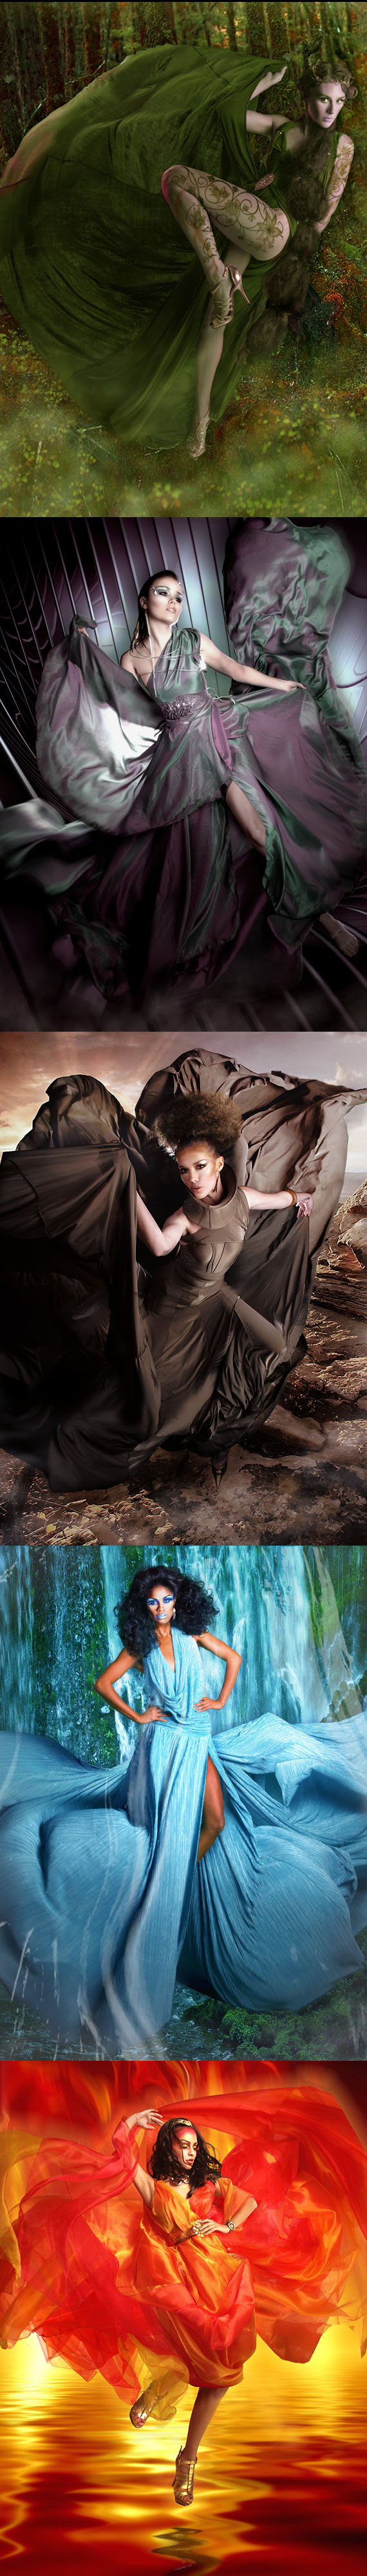 San Diego, CA Jan 29, 2012 FBTVFashion2012 Flying Elemental Godesses Collection: Wood, Metal, Earth, Water, Fire